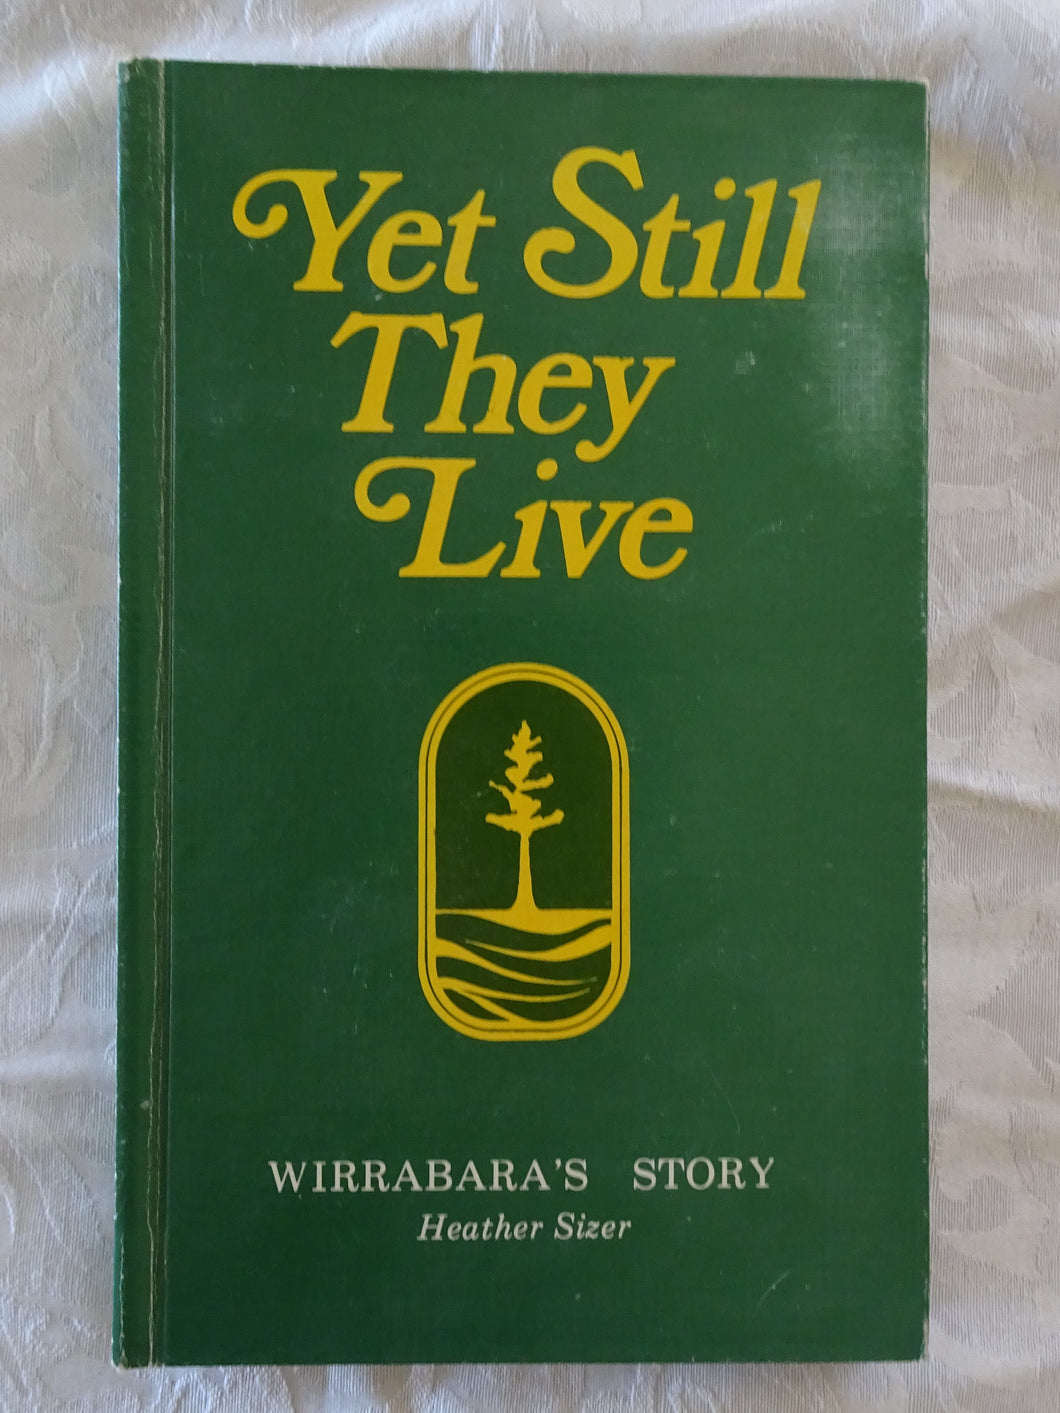 Yet Still They Live by Heather Sizer